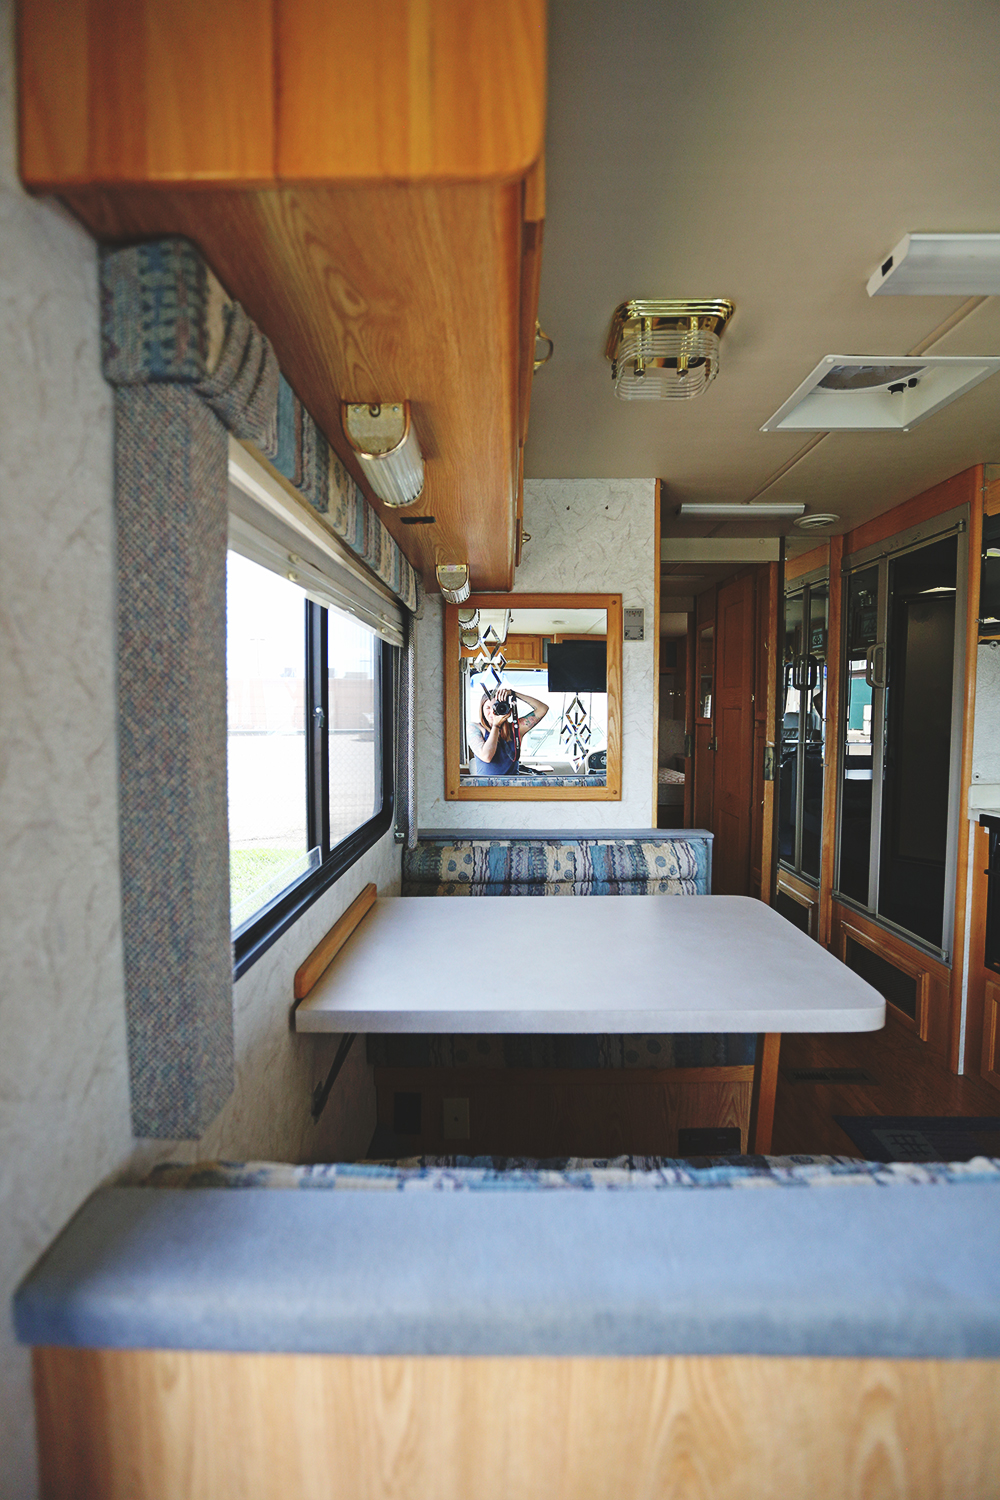 Serenica Landship: View to kitchen table from entrance steps, looking left.